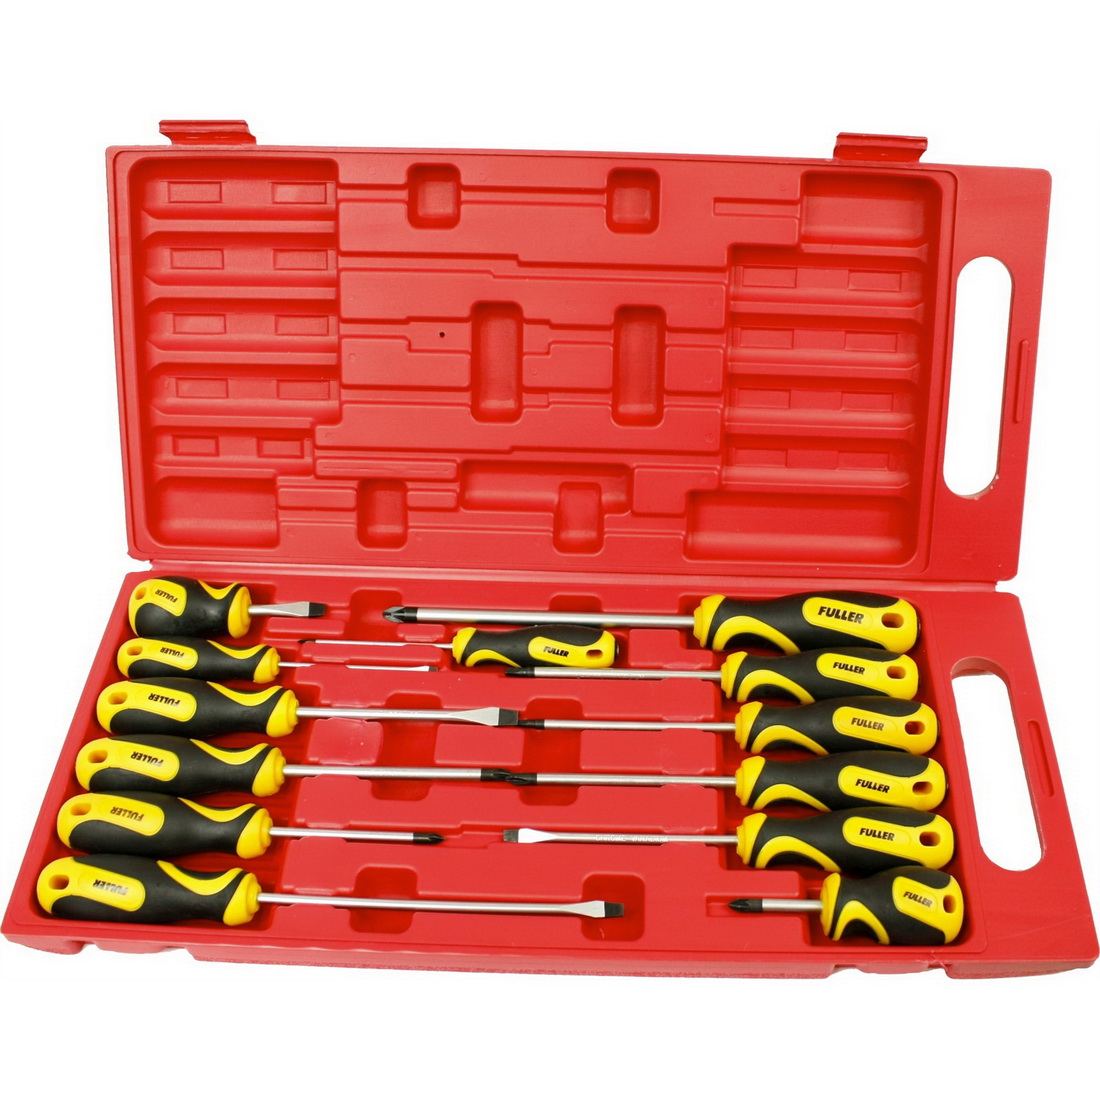 13-Piece Screwdriver Set